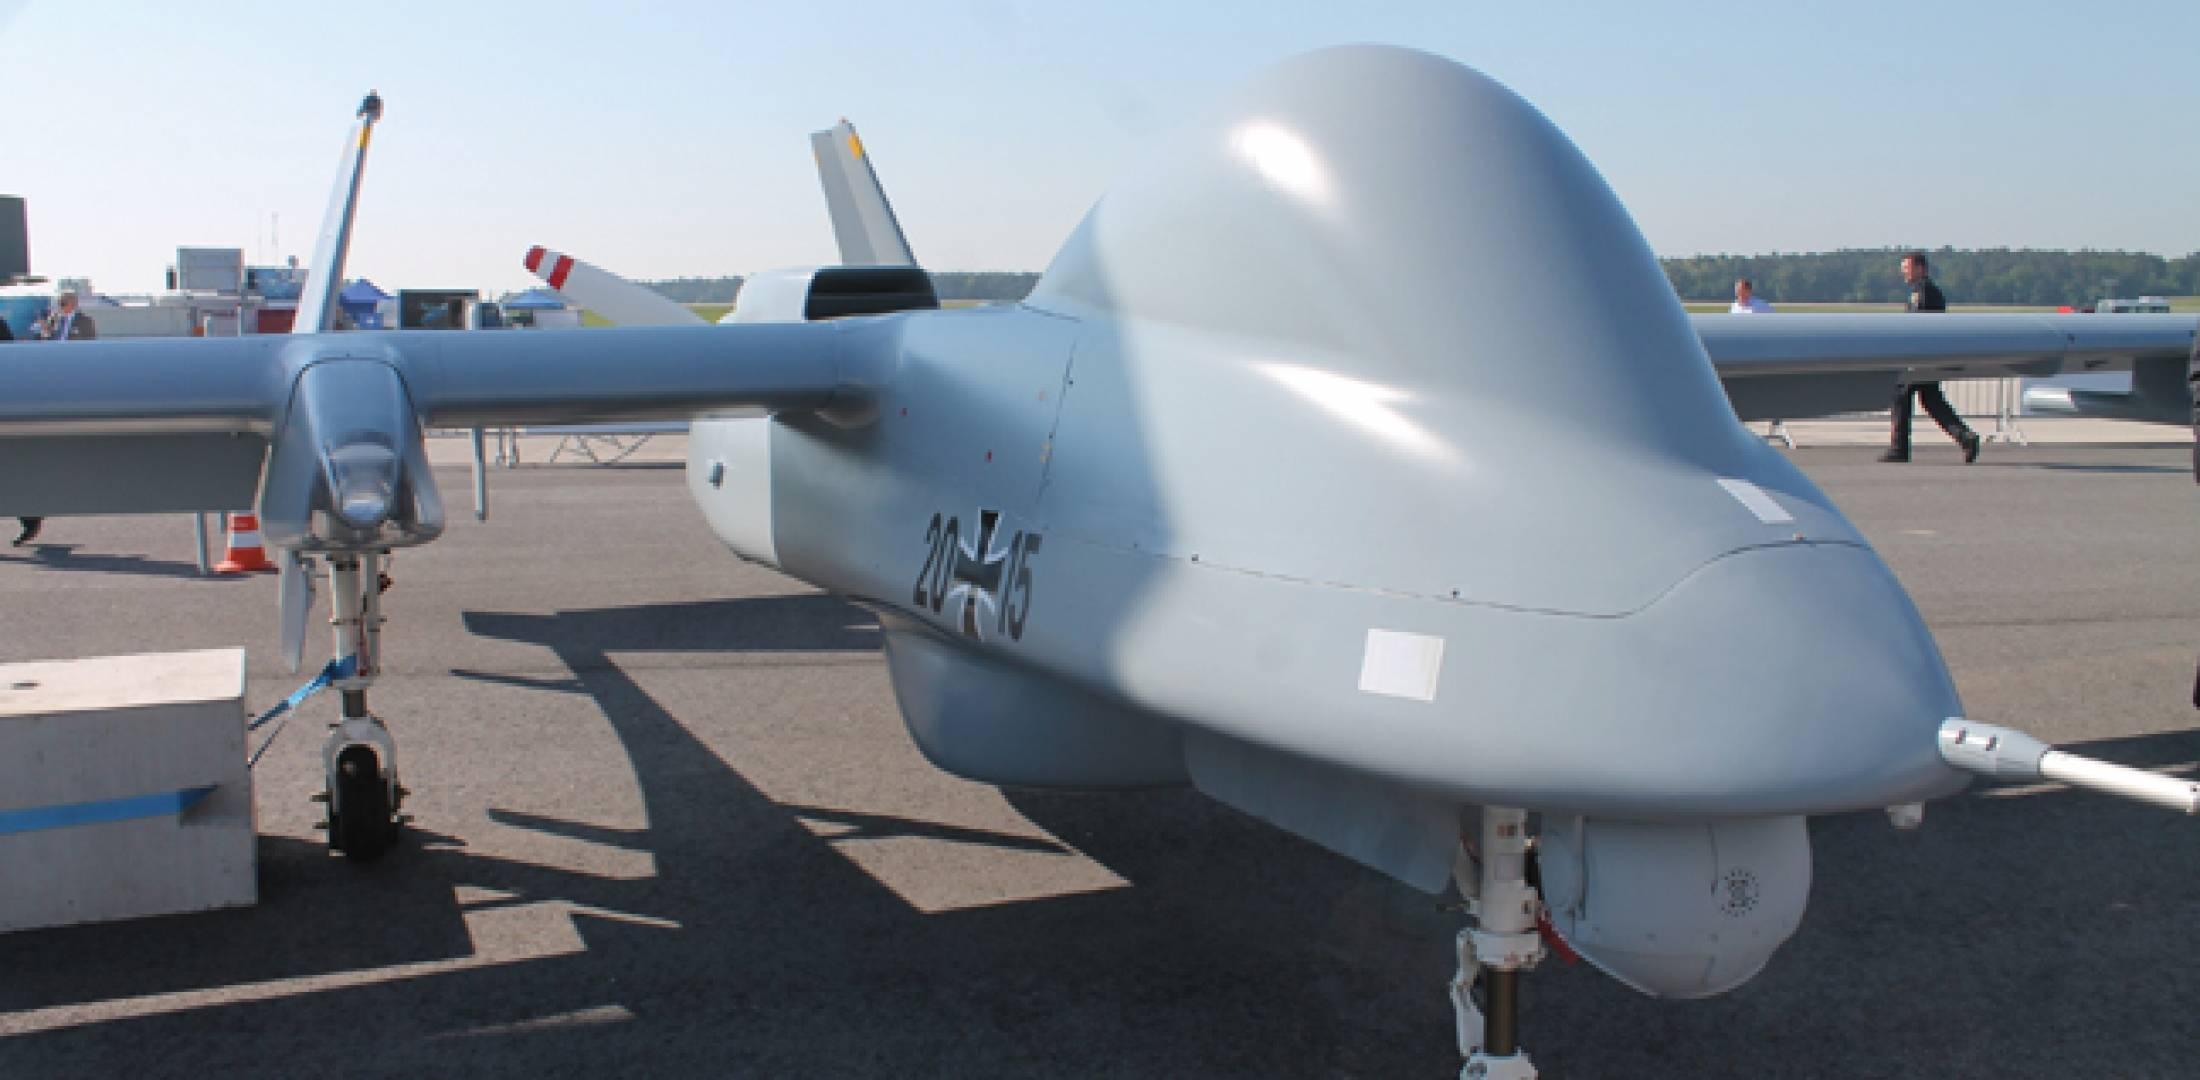 Israeli-built Heron 1 UAVs have been operated for the German air force over Afghanistan via a lease-operate-maintain contract.